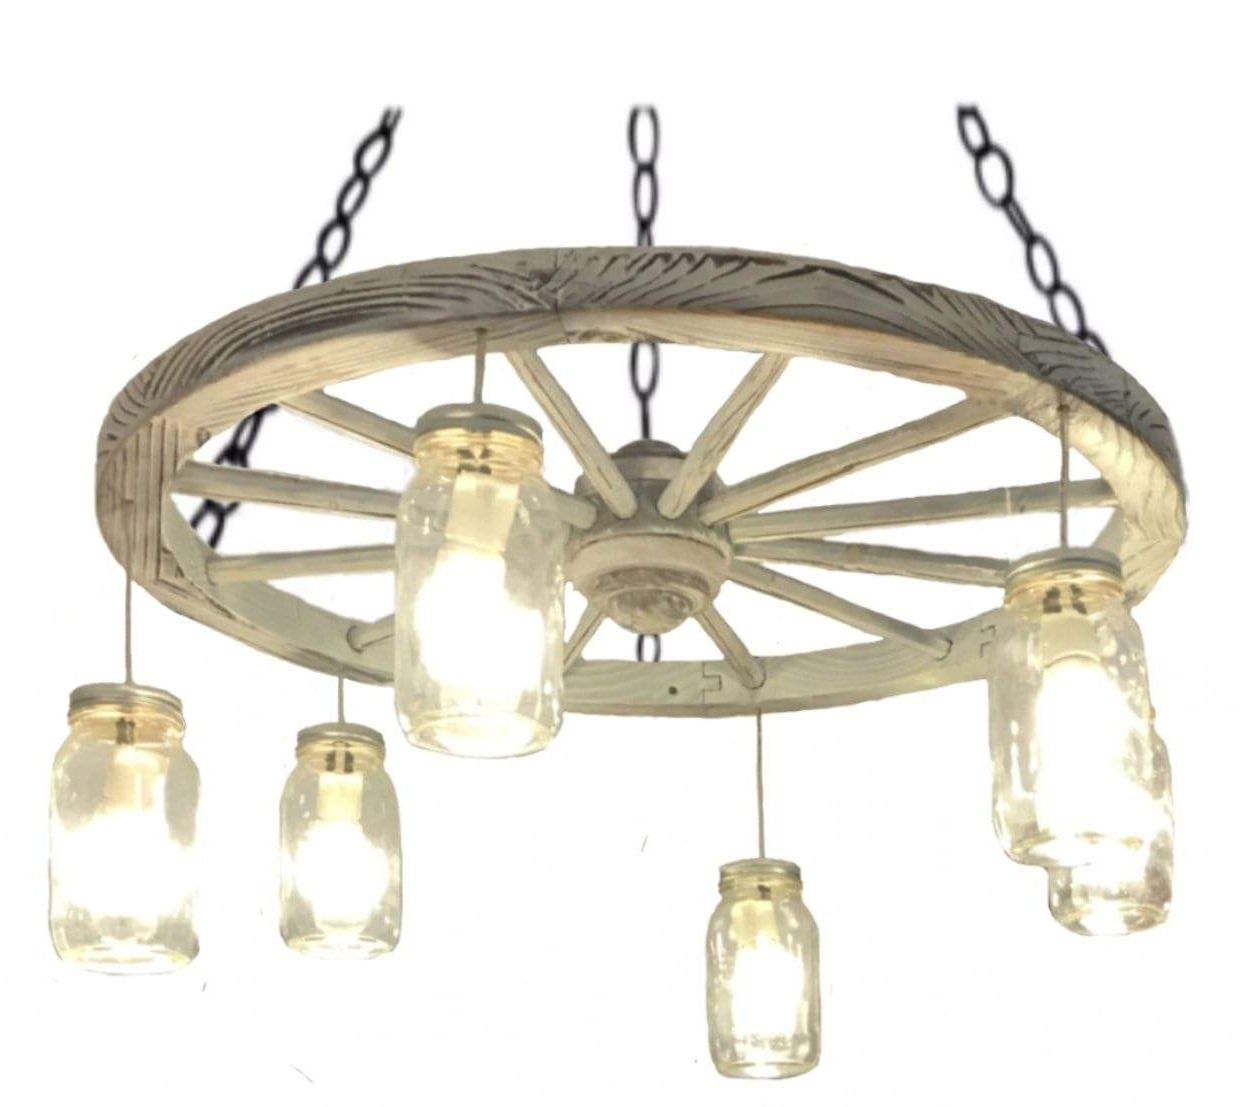 Products You With Regard To Widely Used Janette 5 Light Wagon Wheel Chandeliers (Gallery 19 of 20)